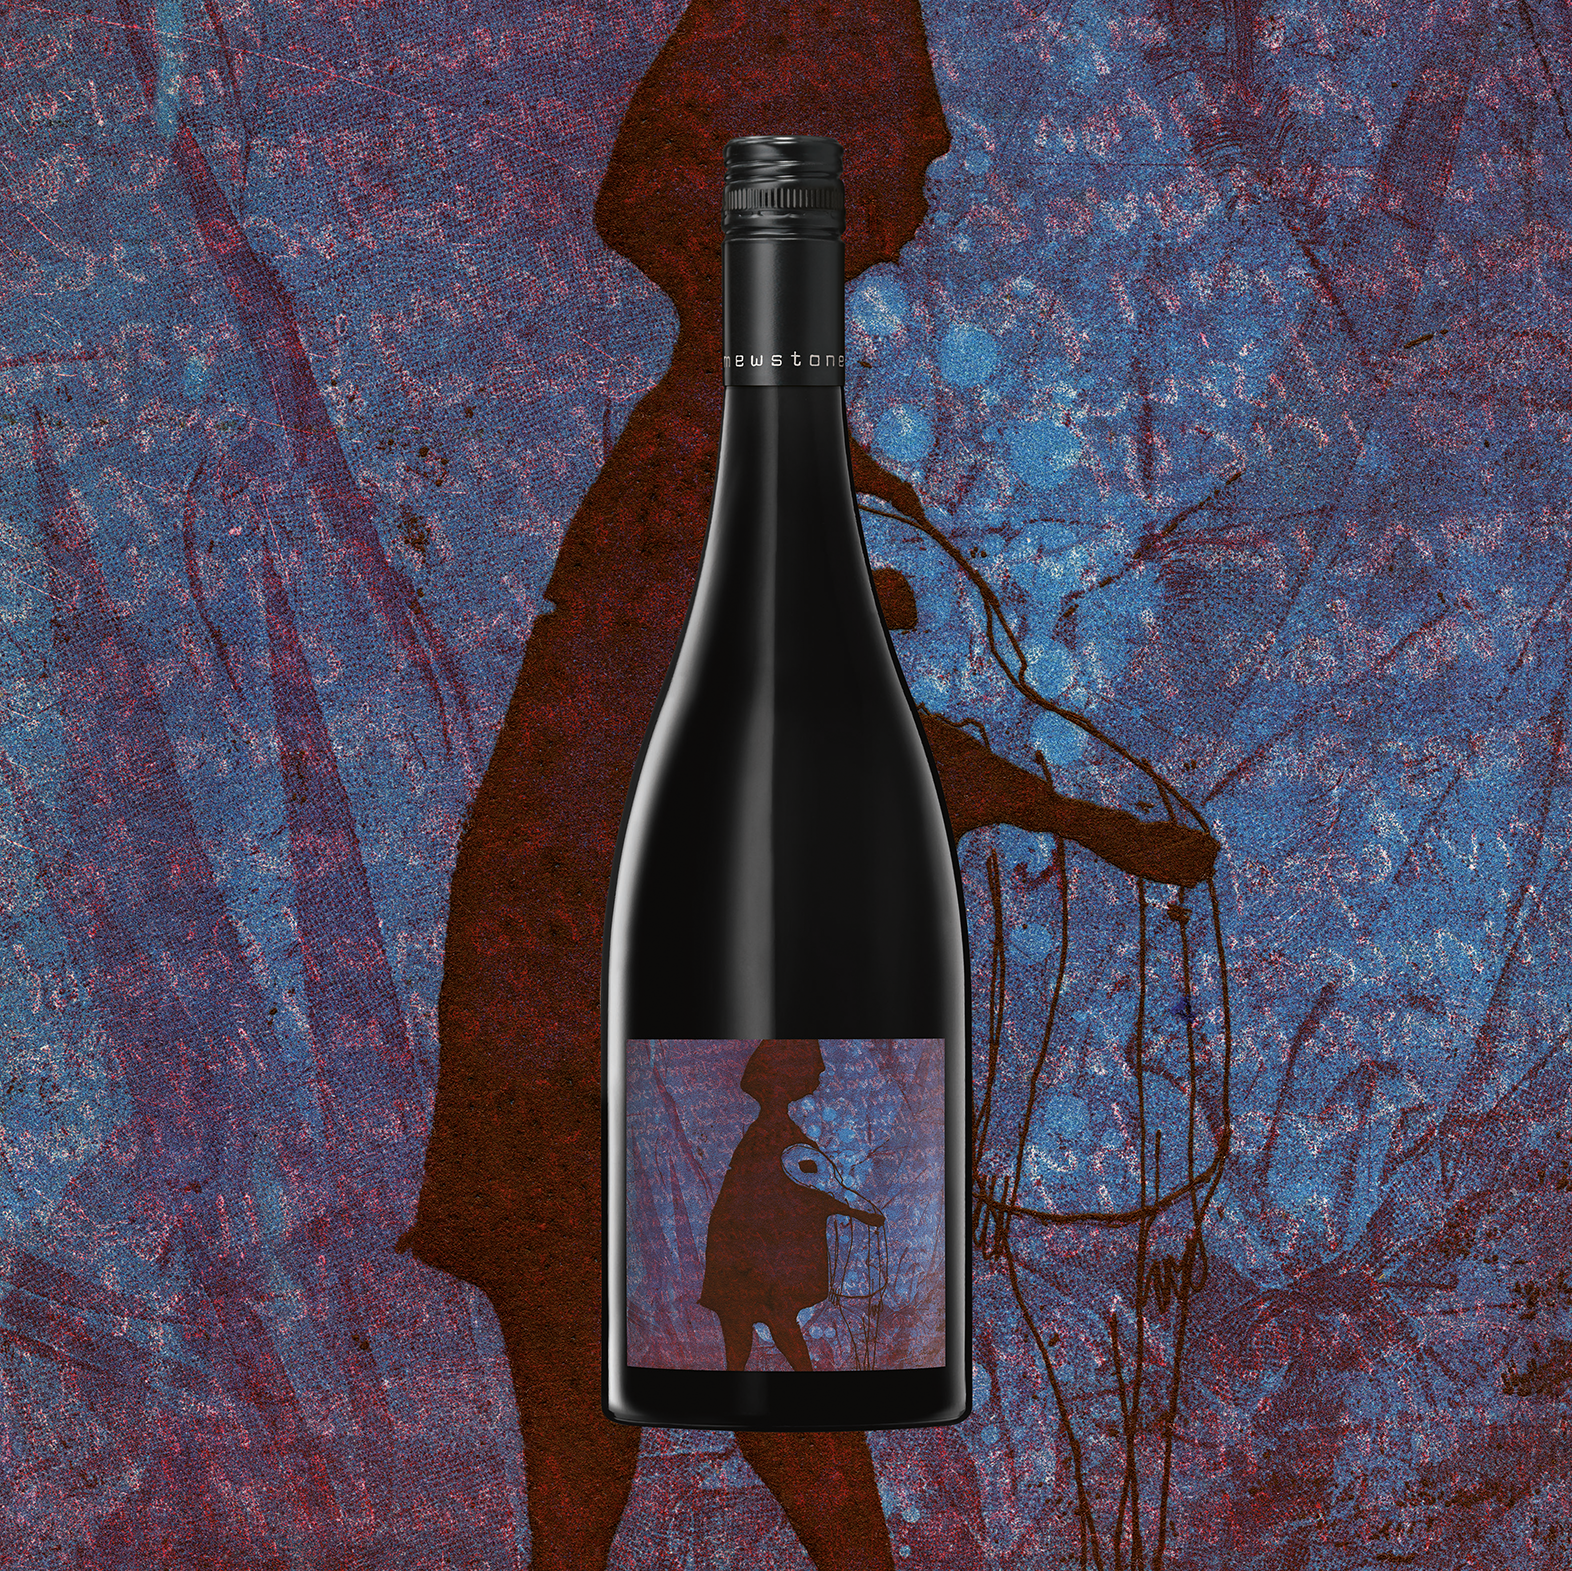 Harcus_mewstone_pinot noir.png